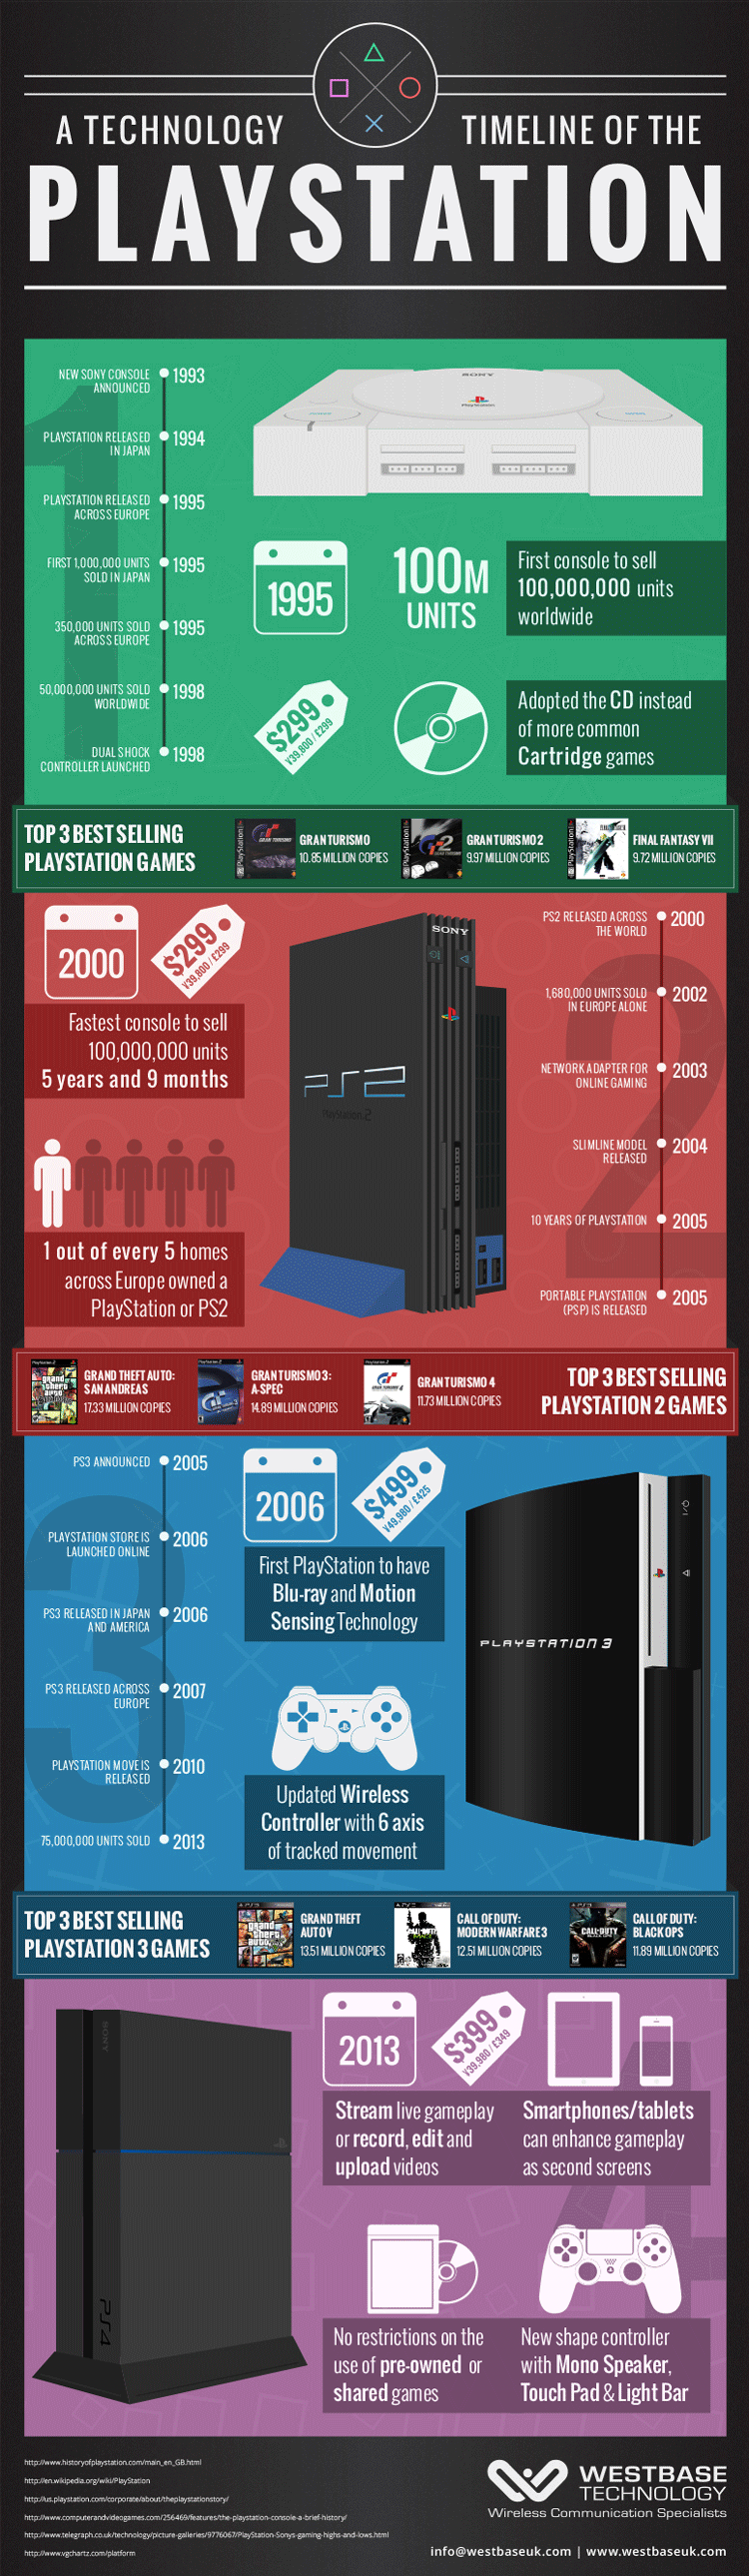 A Technology Timeline of the PlayStation